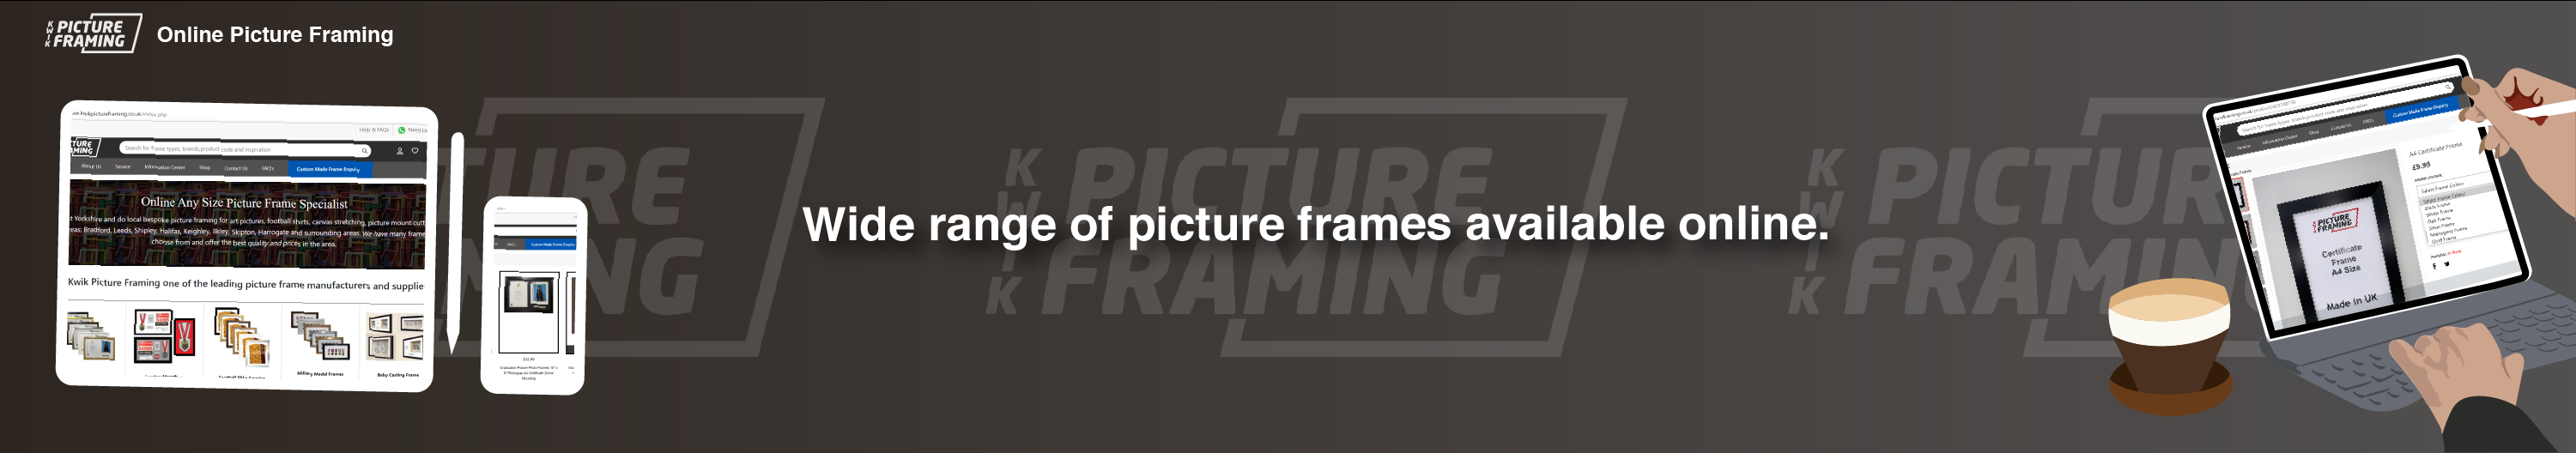 Online Picture Framing